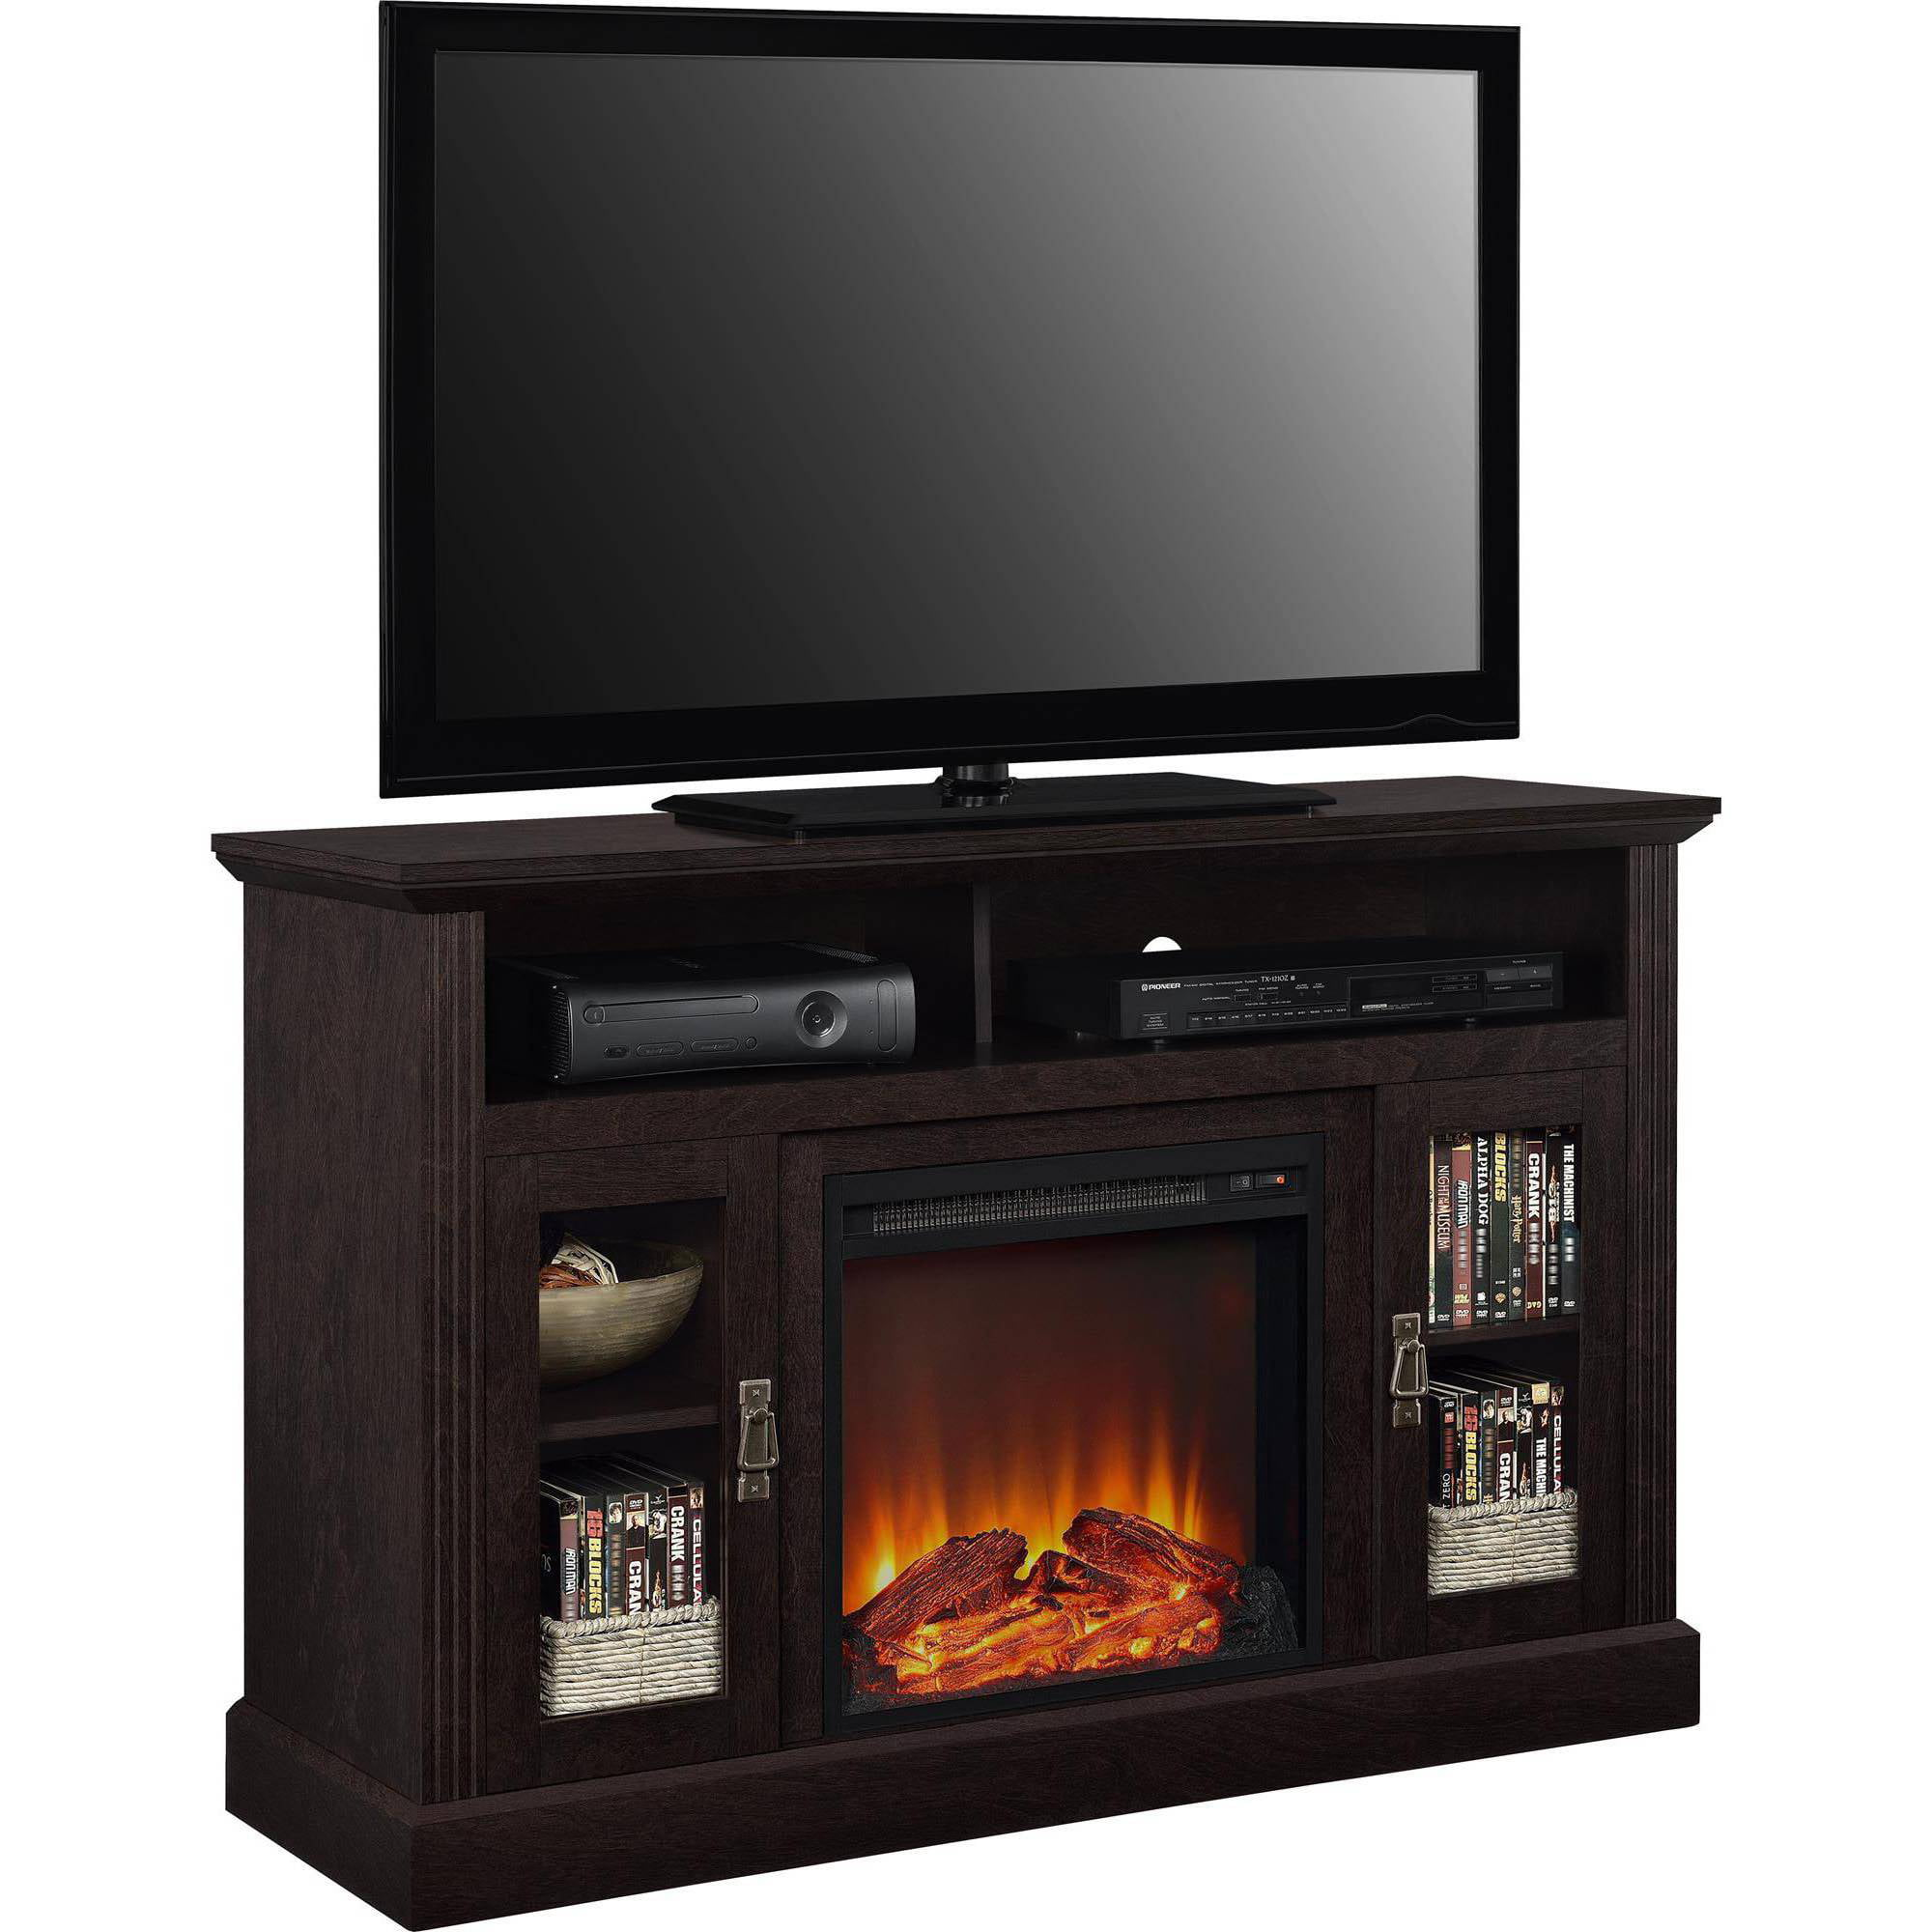 sams for stand center lots fireplace club furniture adorable entertaining entertainment stands tv space low electric walmart big inch cheap costco any